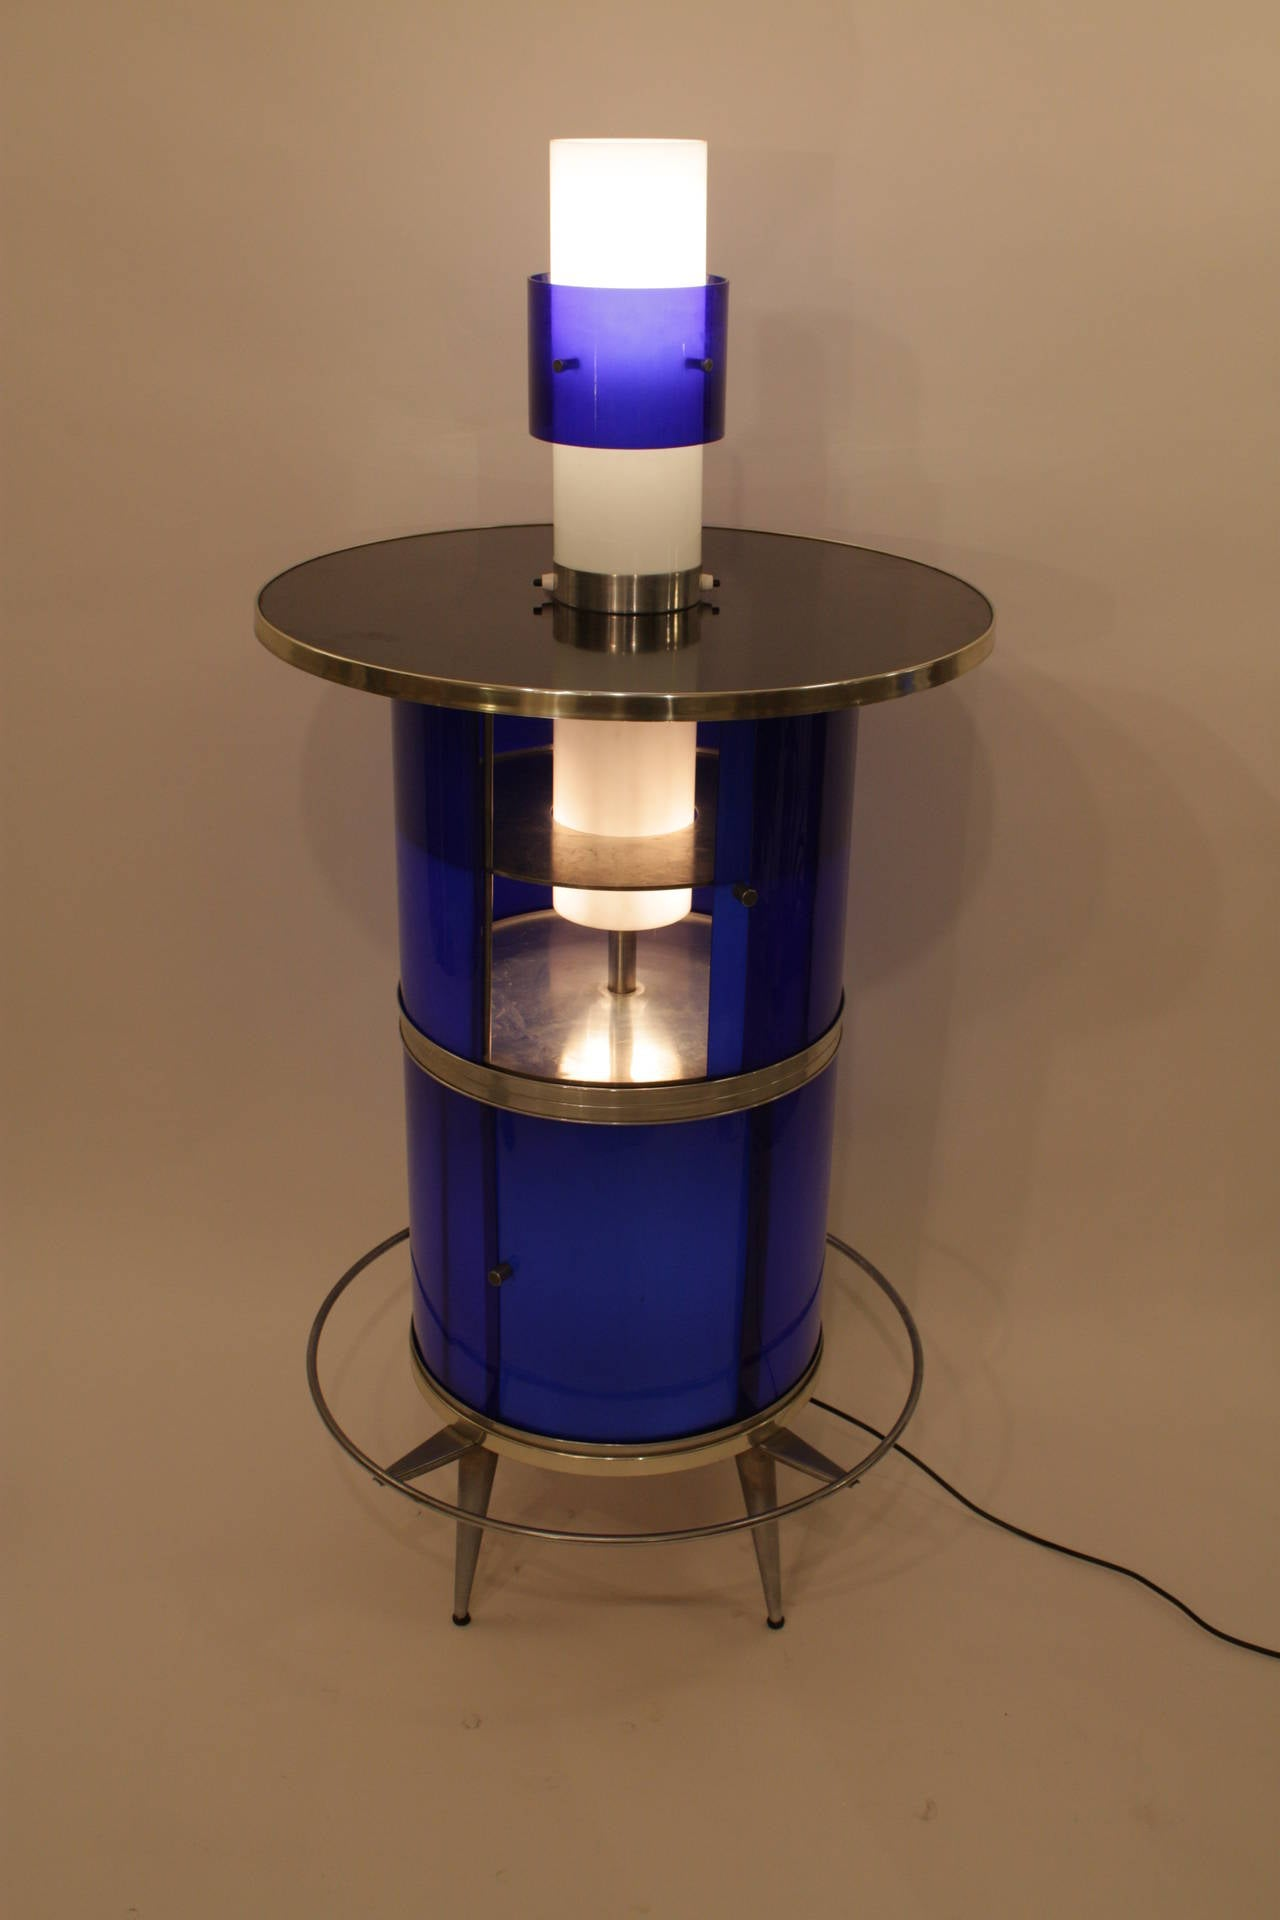 Spanish 1960s Space Age Blue and White Plexiglass Cocktails Bar with Table Lamp 3